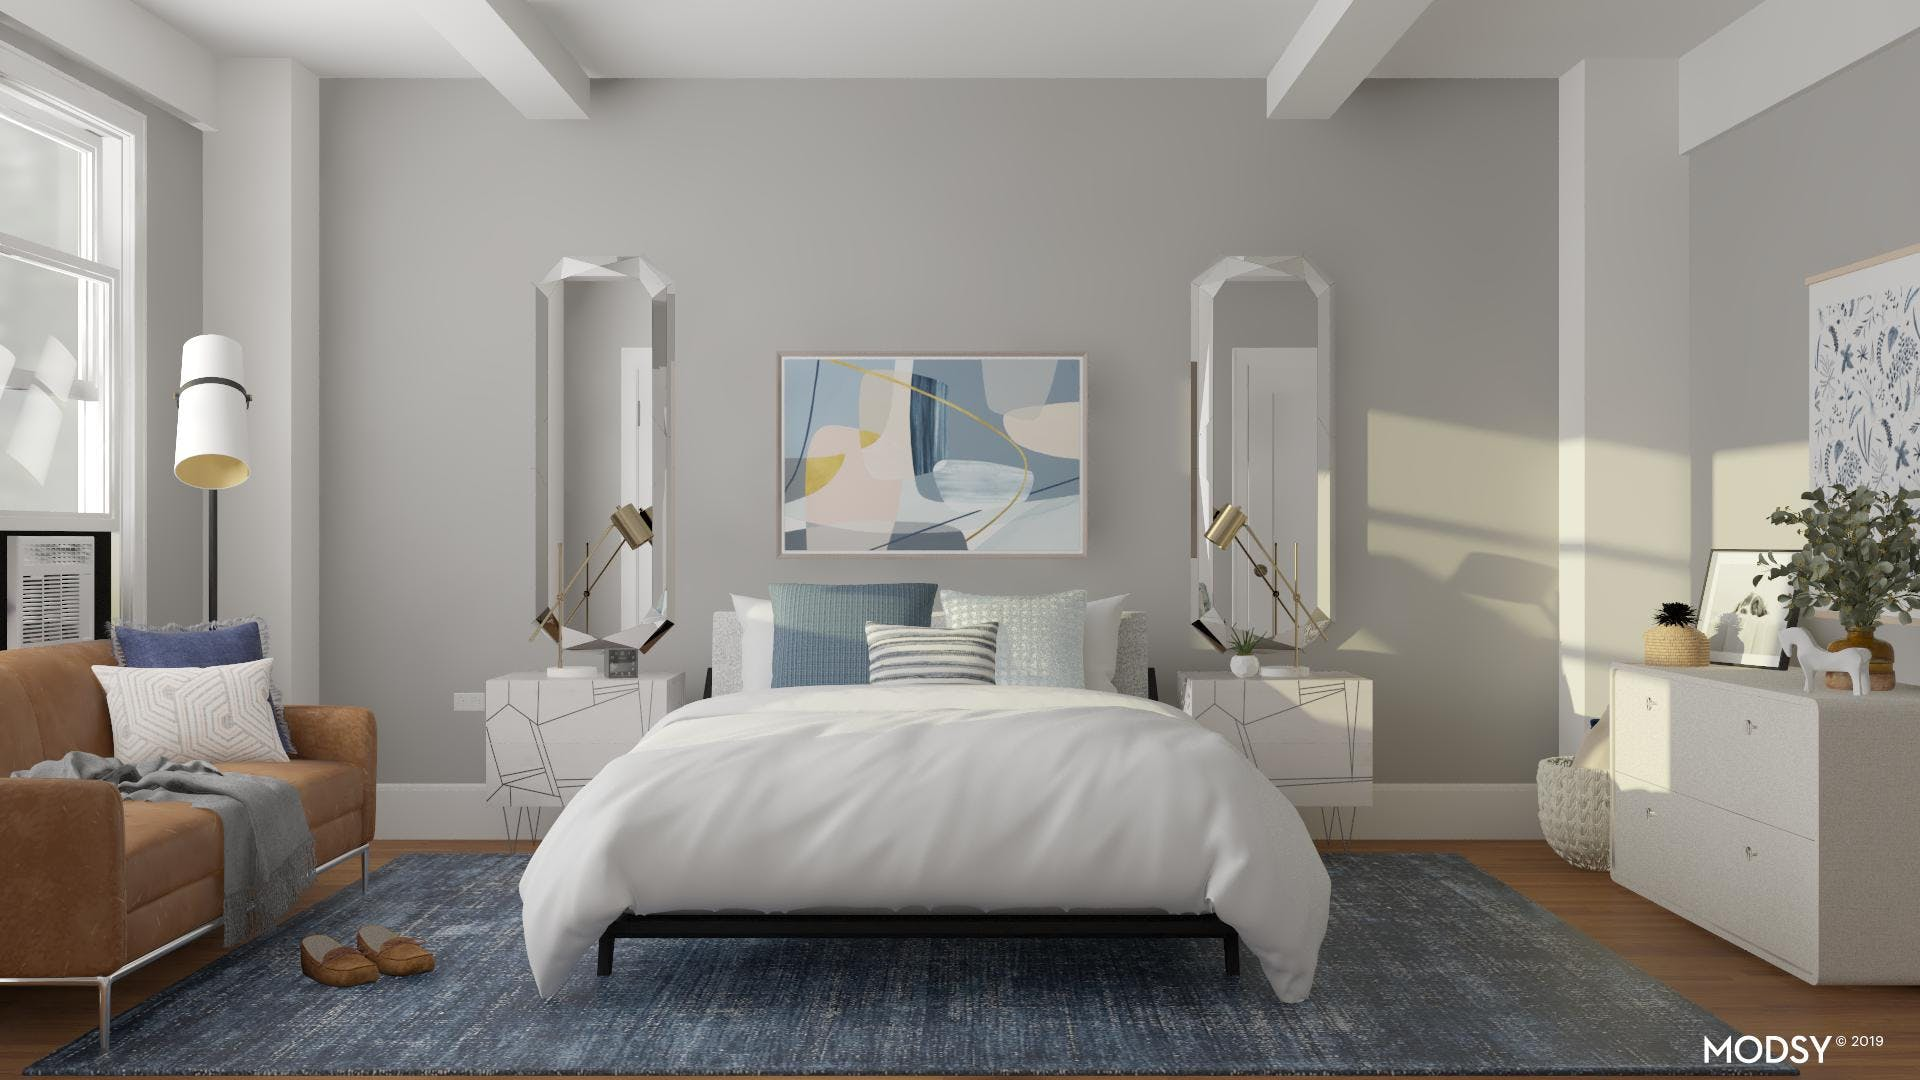 A Beautiful and Inviting Modern Bedroom